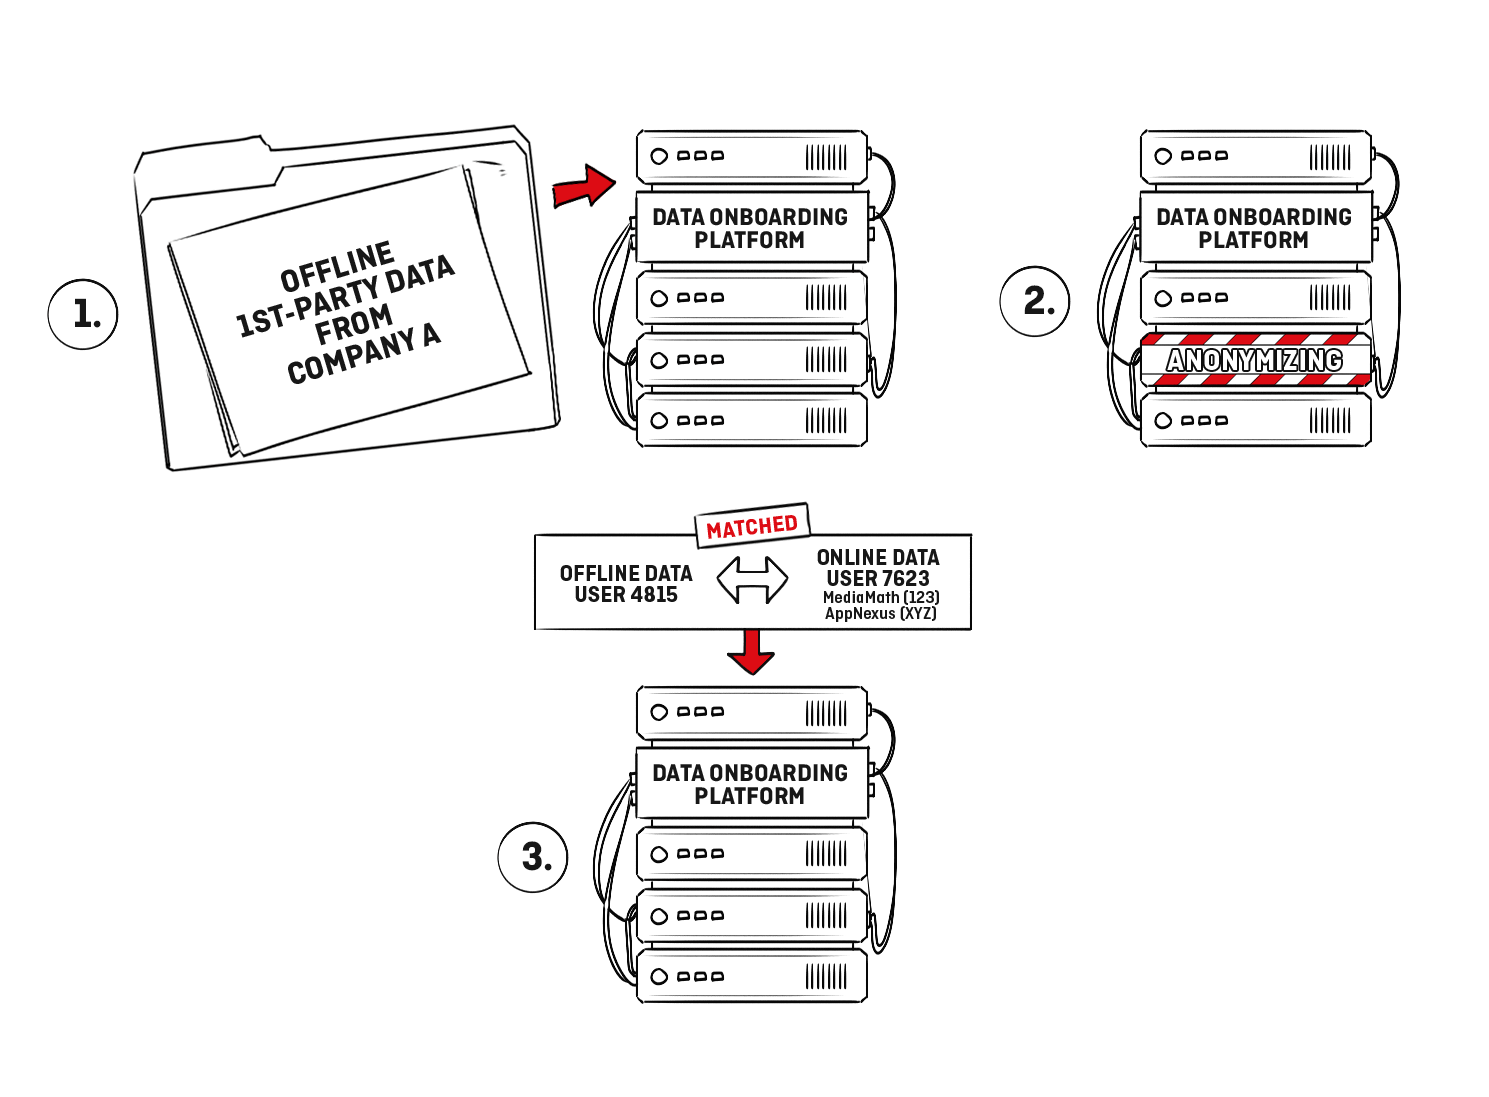 First-party data onboarding process